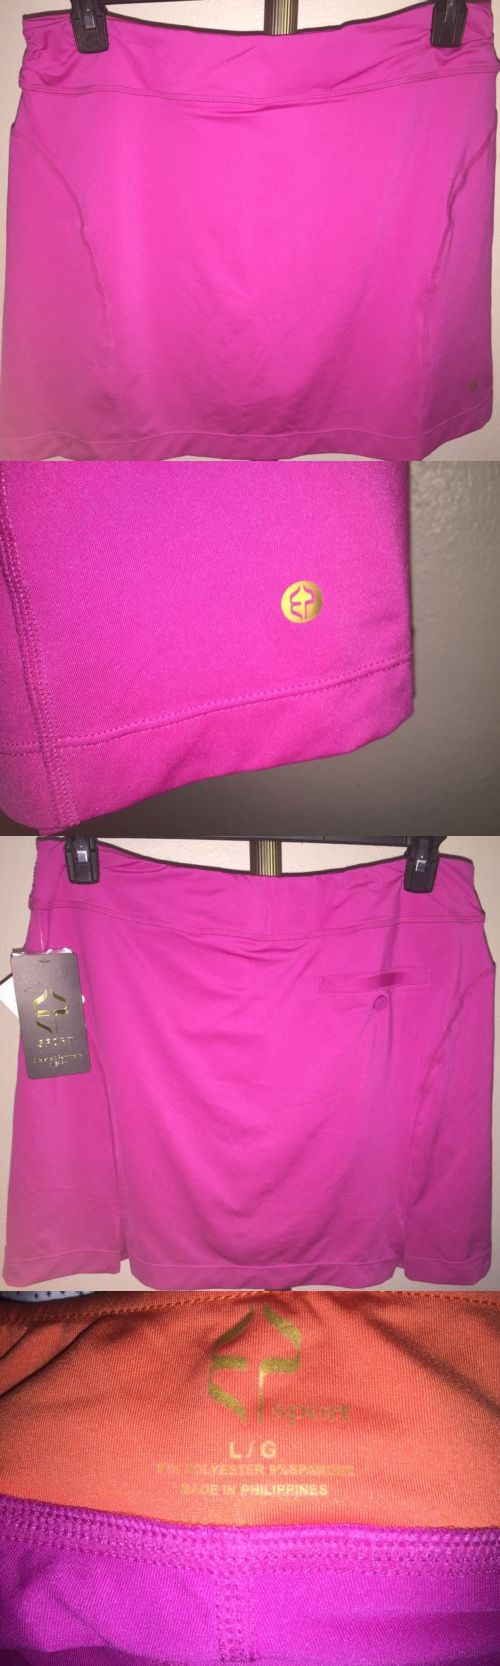 Skirts Skorts and Dresses 179003: Nwt Ep Sport Hot House Caliente Pink Golf Skort Sz Large -> BUY IT NOW ONLY: $34.99 on eBay!